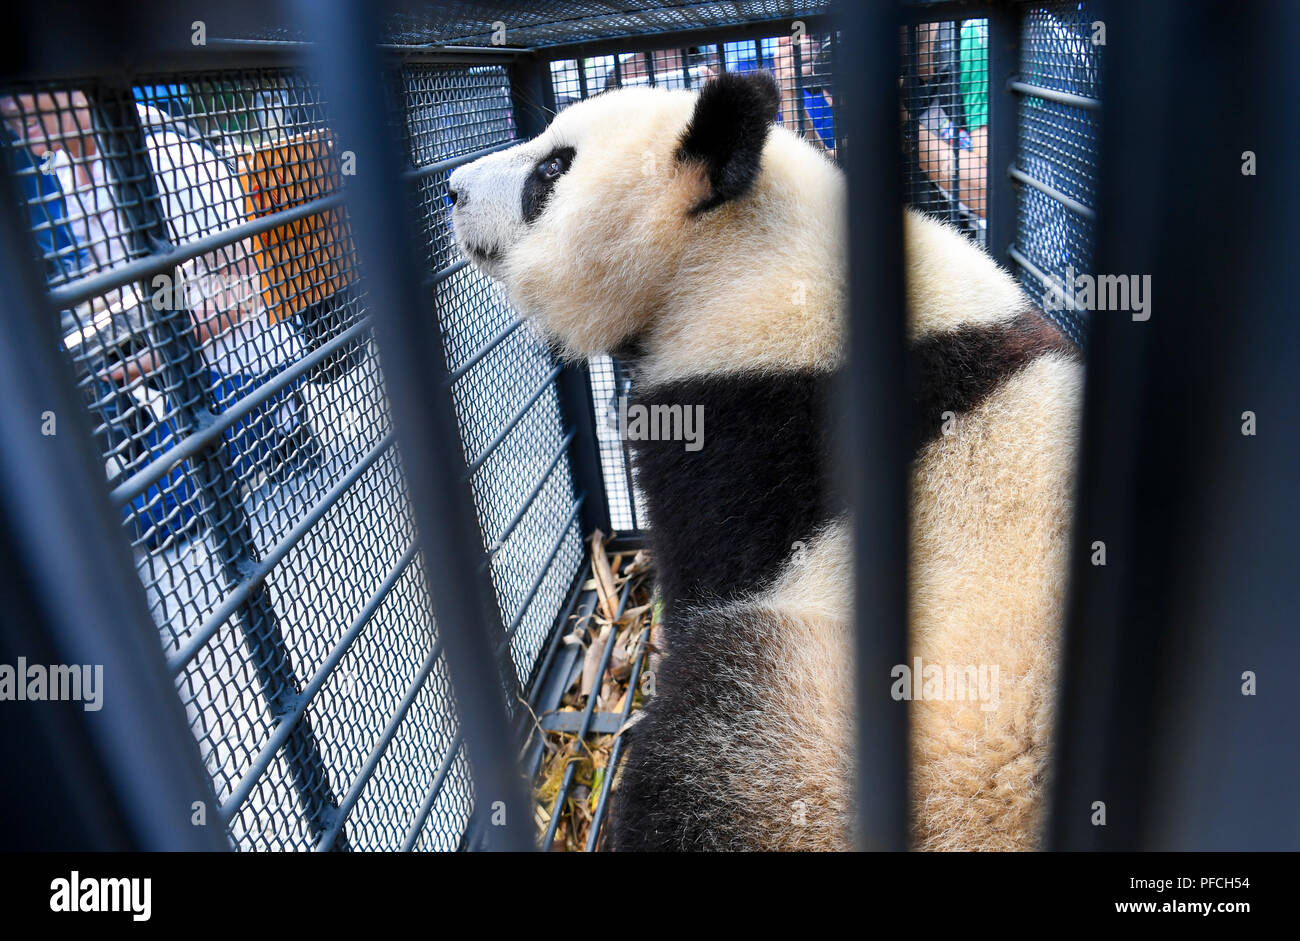 Changchun, Jilin, China, 21th August 2018. Two sub-adult female giant pandas, Chuxin and Muyun, just two years old, left the Dujiangyan base of the China Giant Panda Conservation Research Center to settle down in the Northeast Tiger Garden in Jilin Province. Credit:Costfoto/Alamy Live News - Stock Image